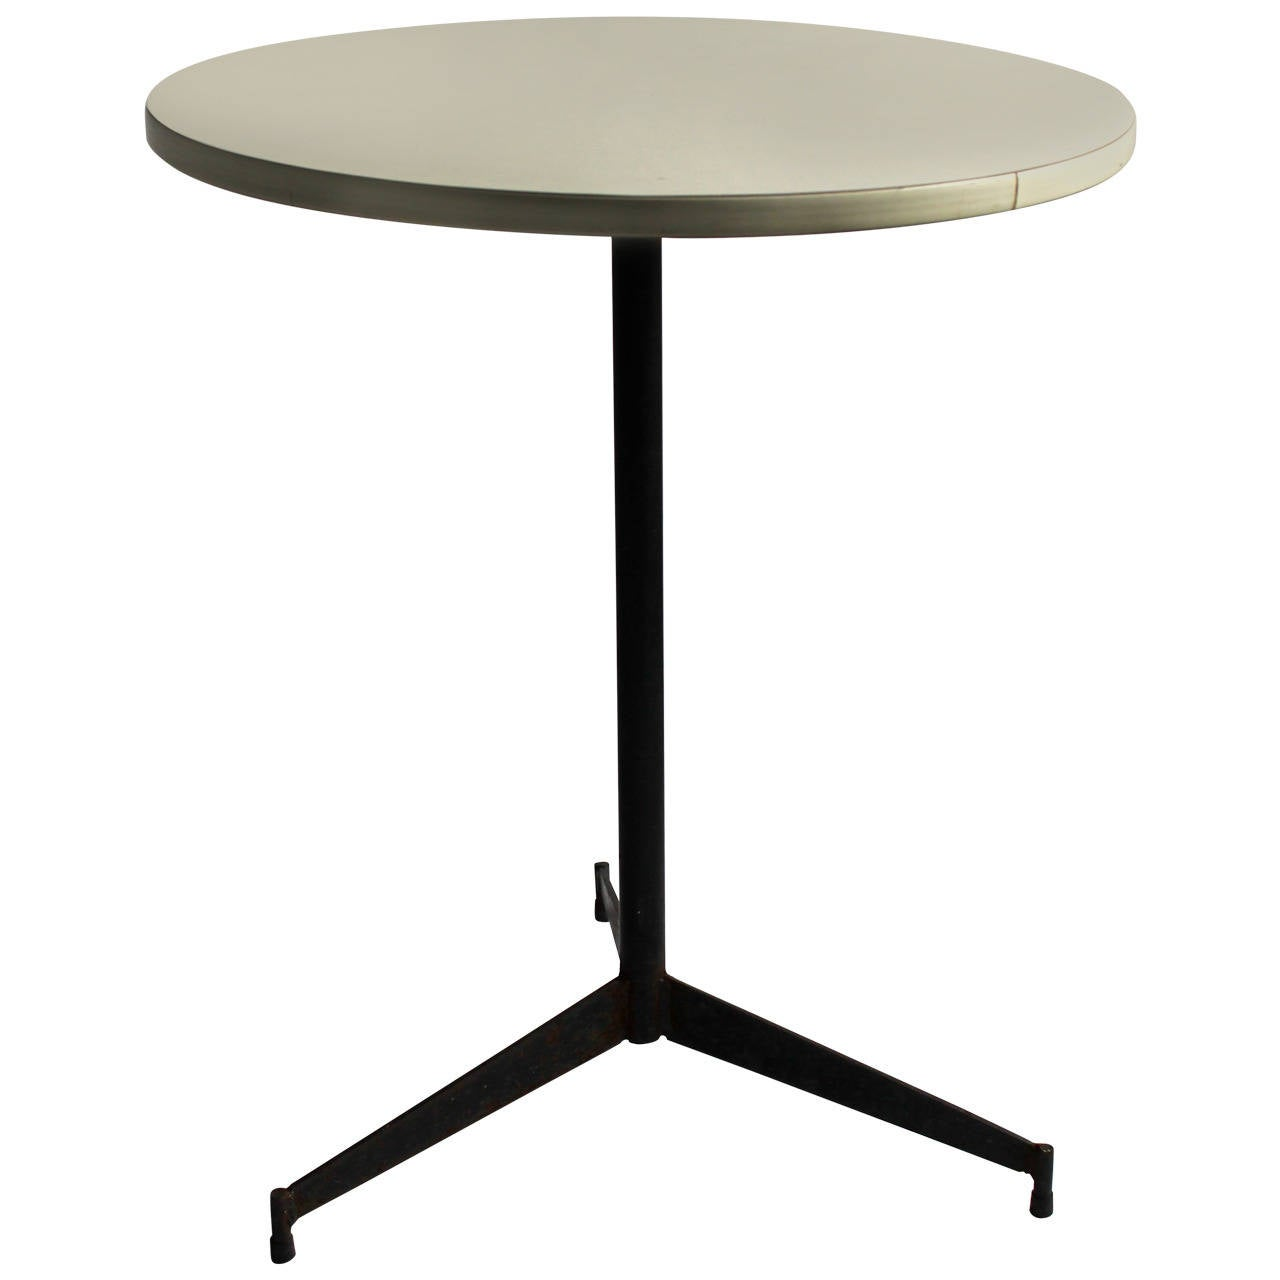 Paul mccobb drinks table wrought iron and white formica for Formica table